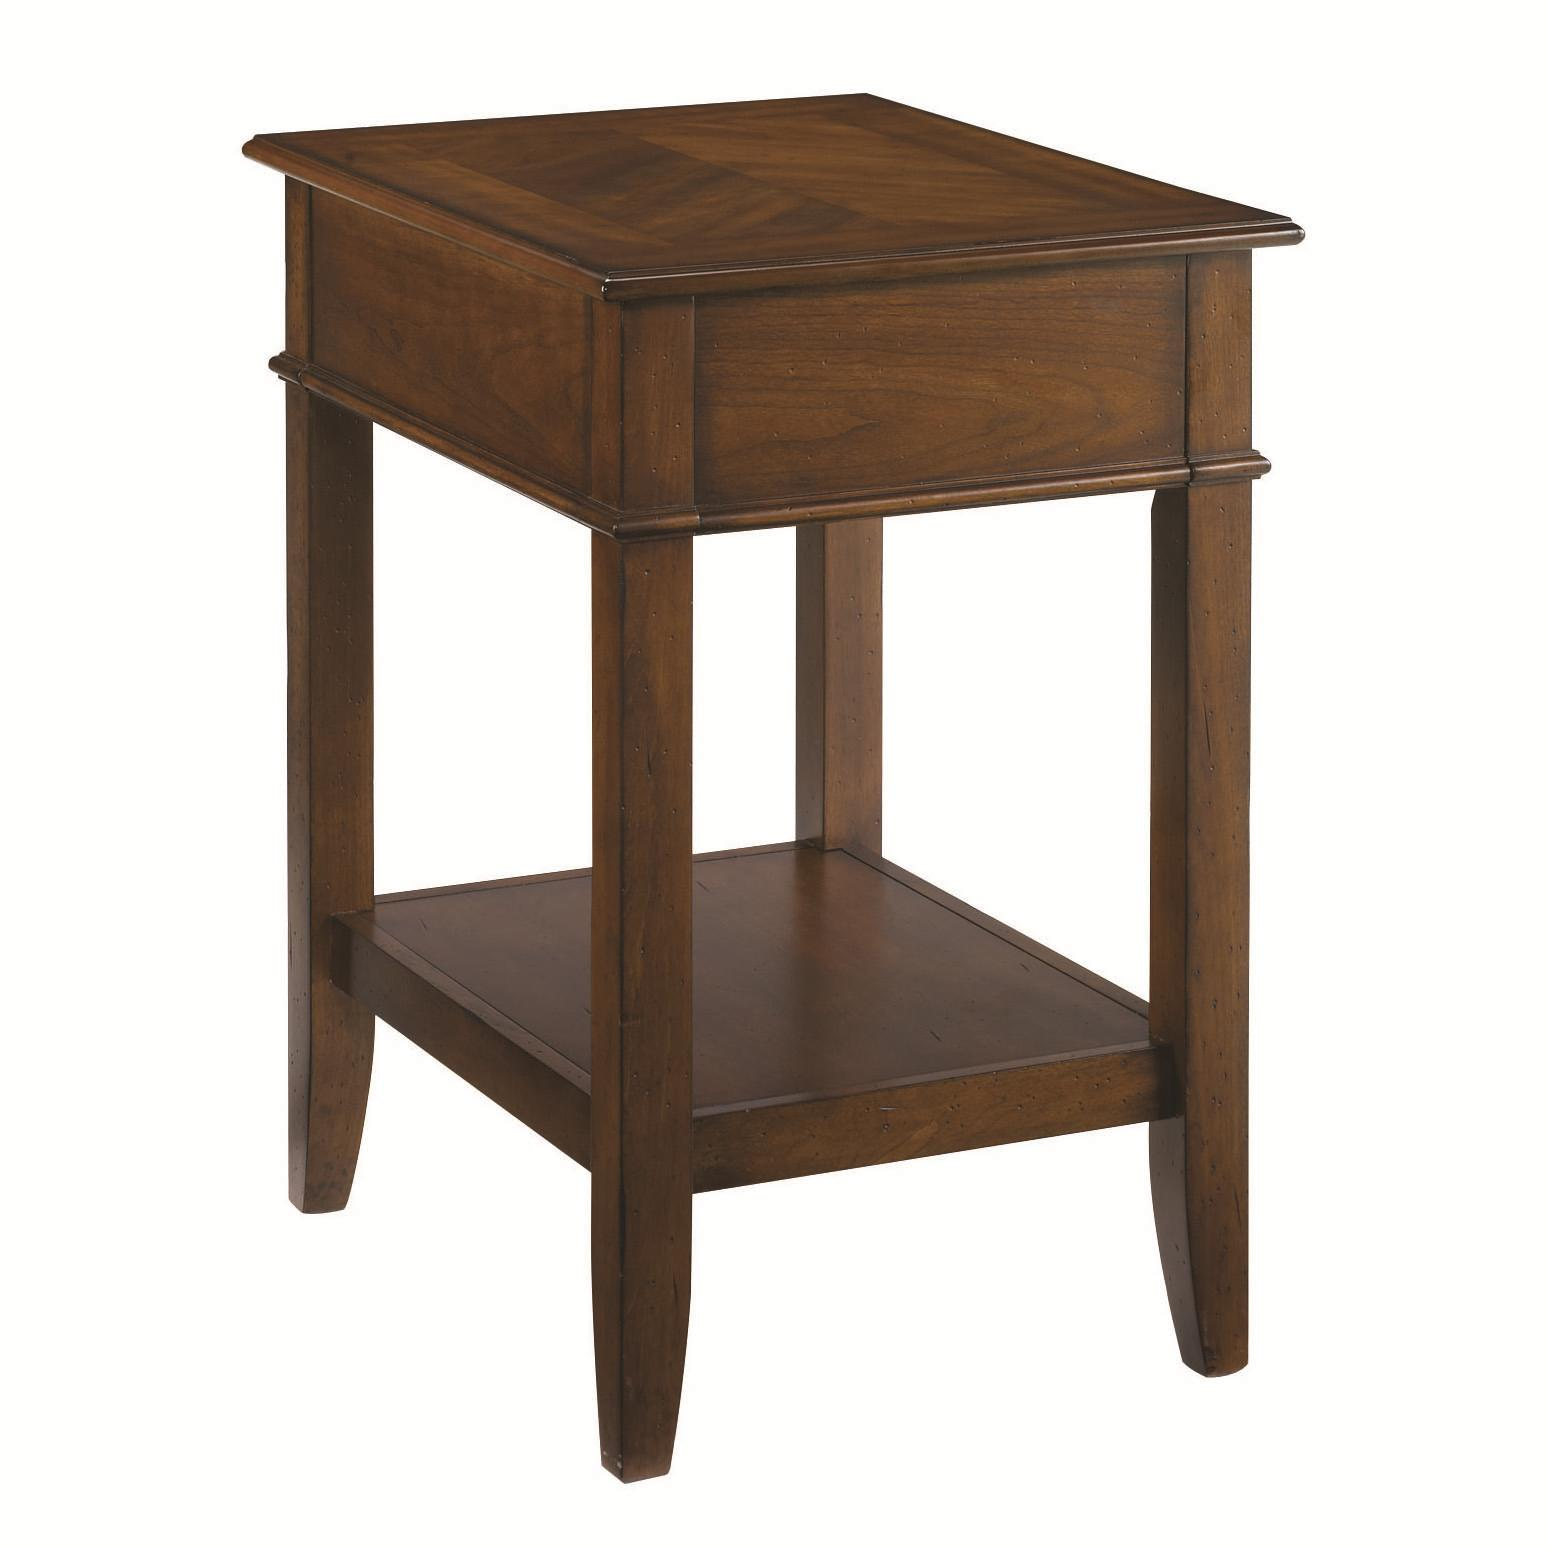 Hammary Mercantile Corner Table - Item Number: 050-942